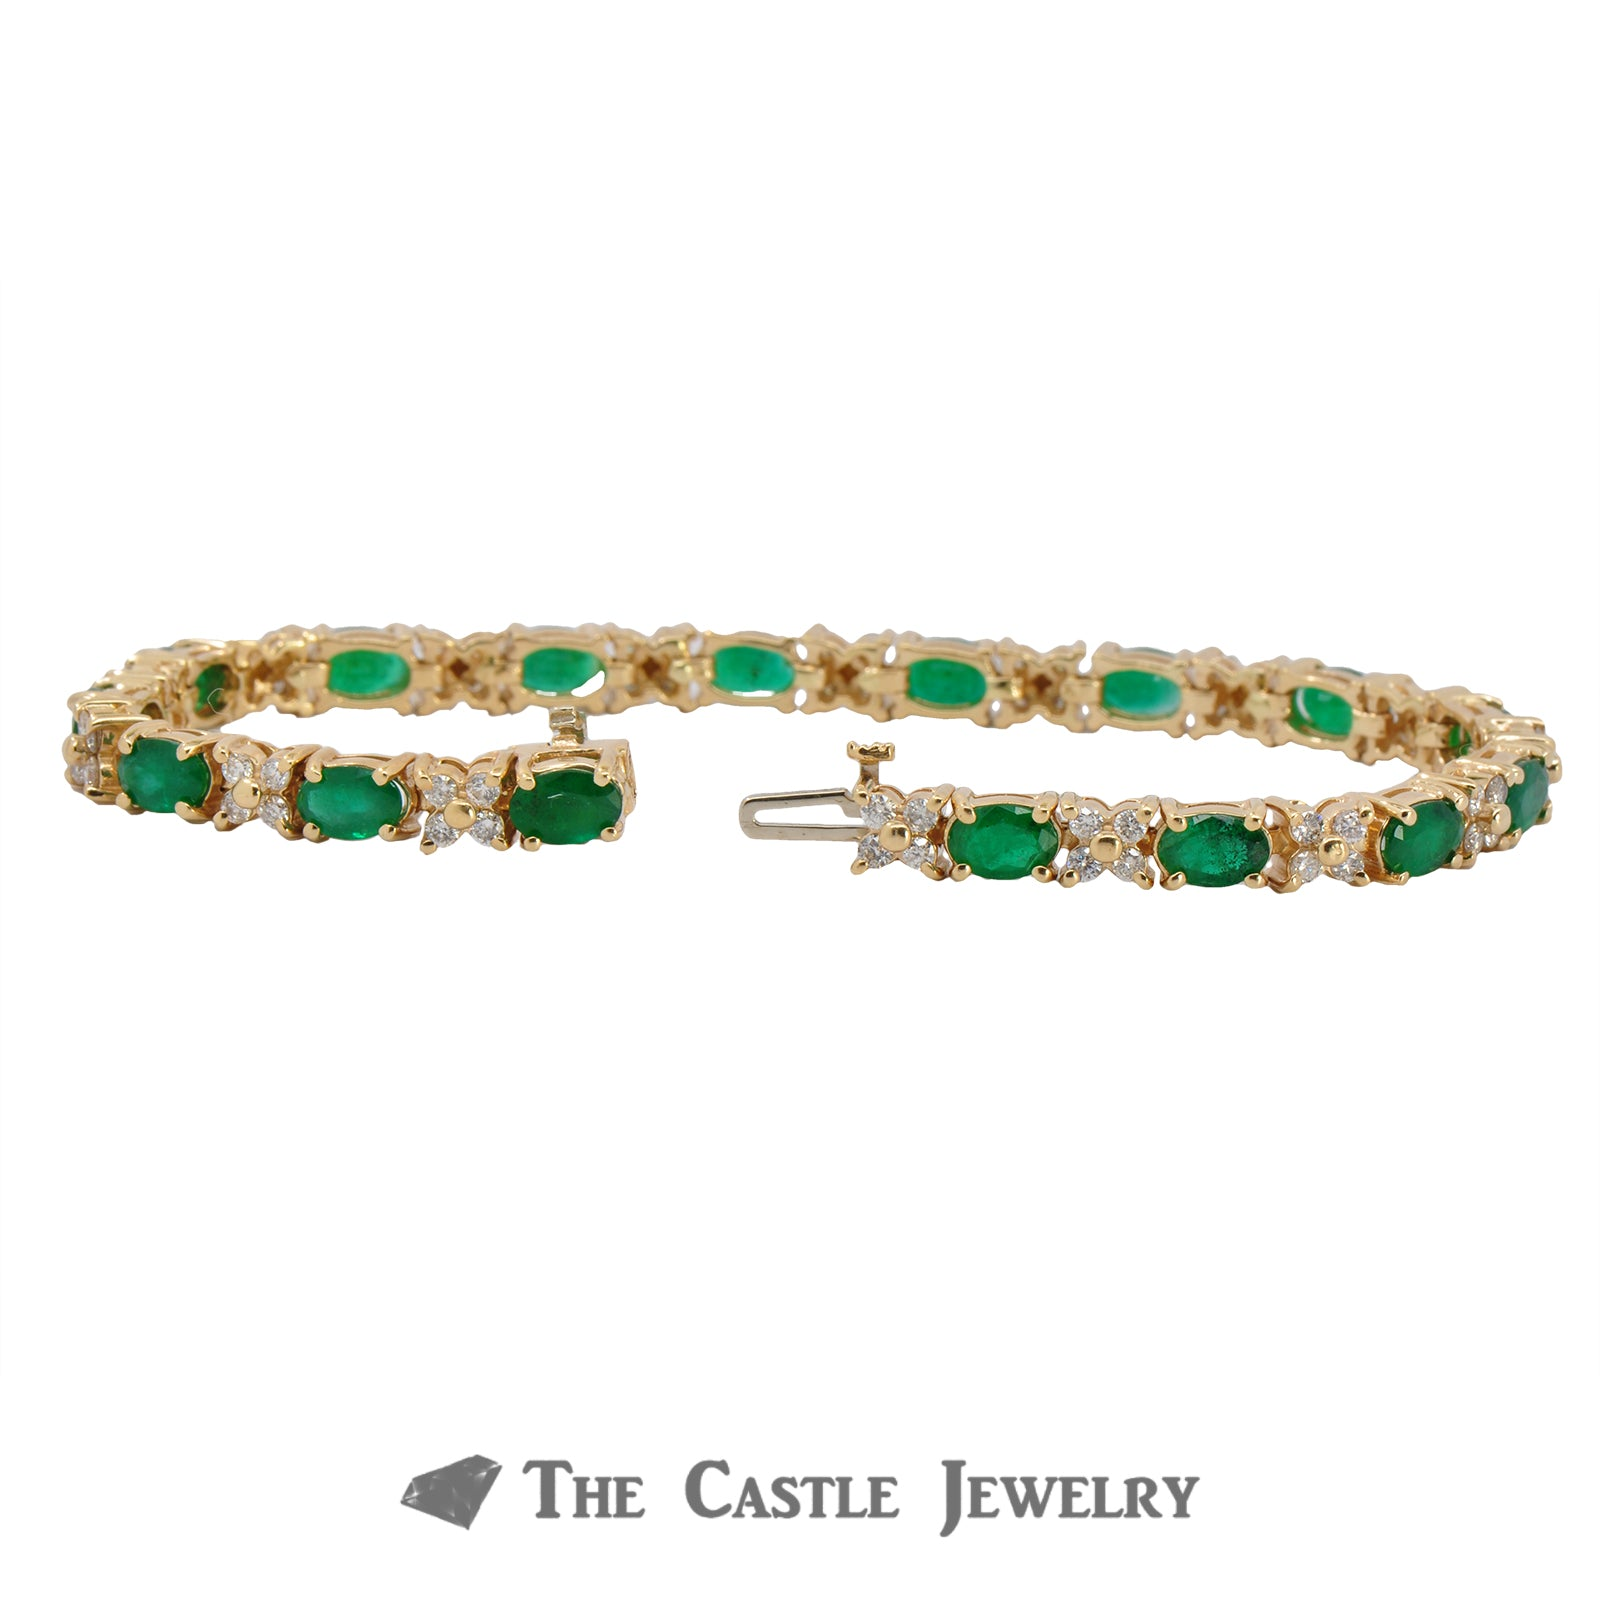 Oval Cut Emerald and Diamond Bracelet in 14K Yellow Gold-1